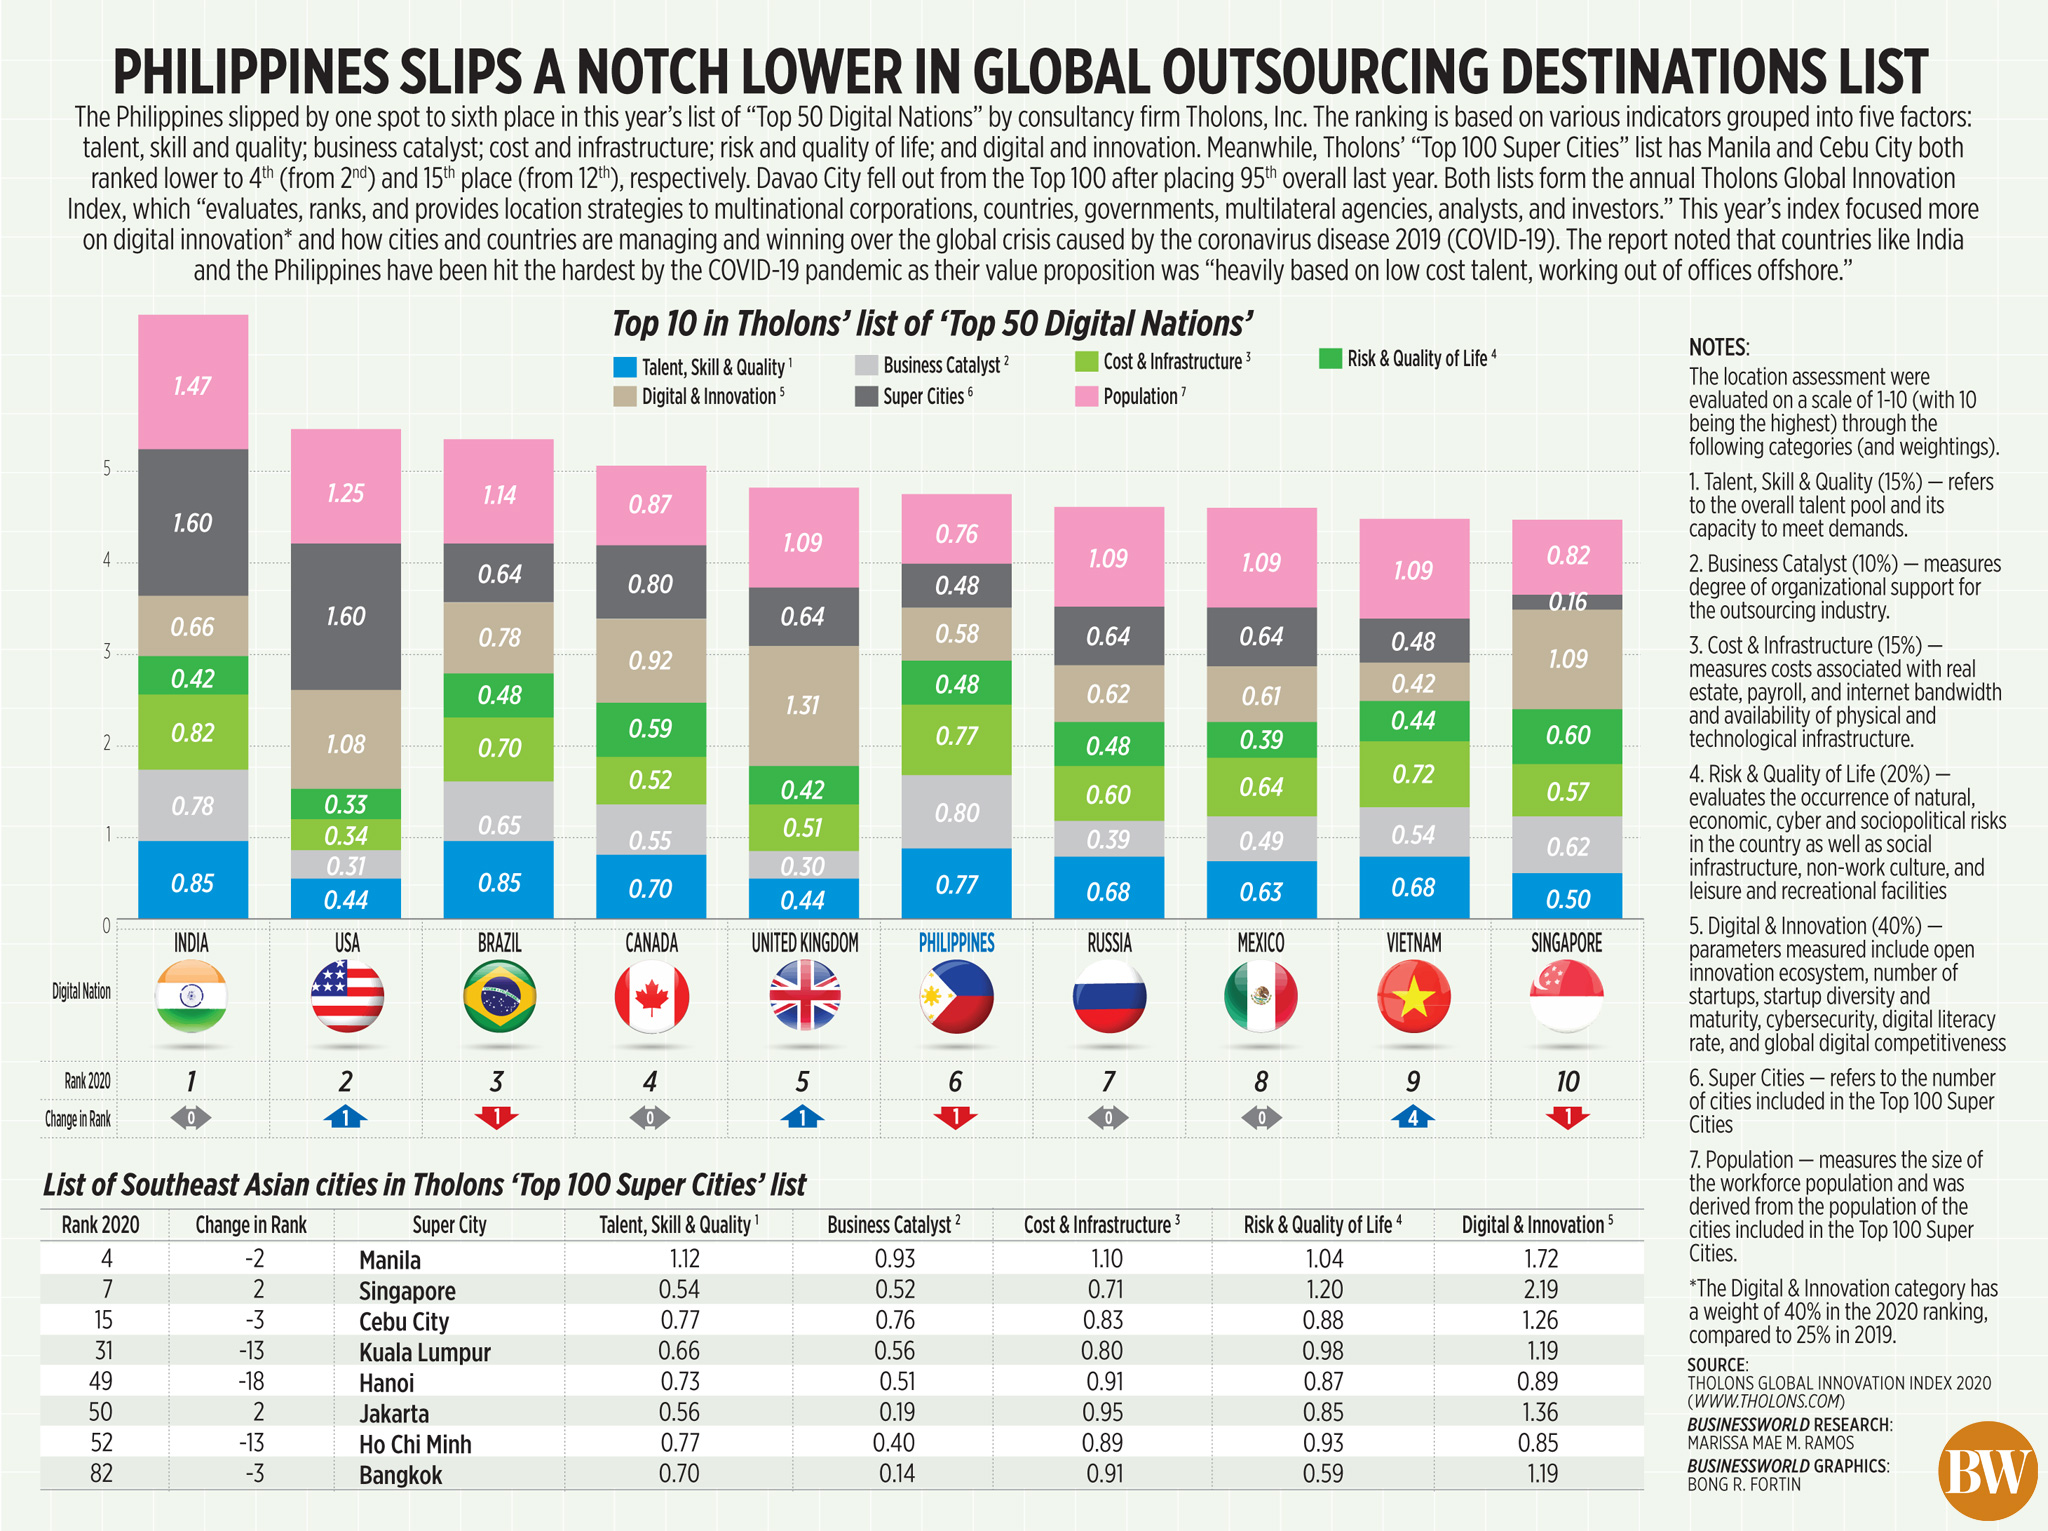 Philippines slips a notch lower in global outsourcing destinations list